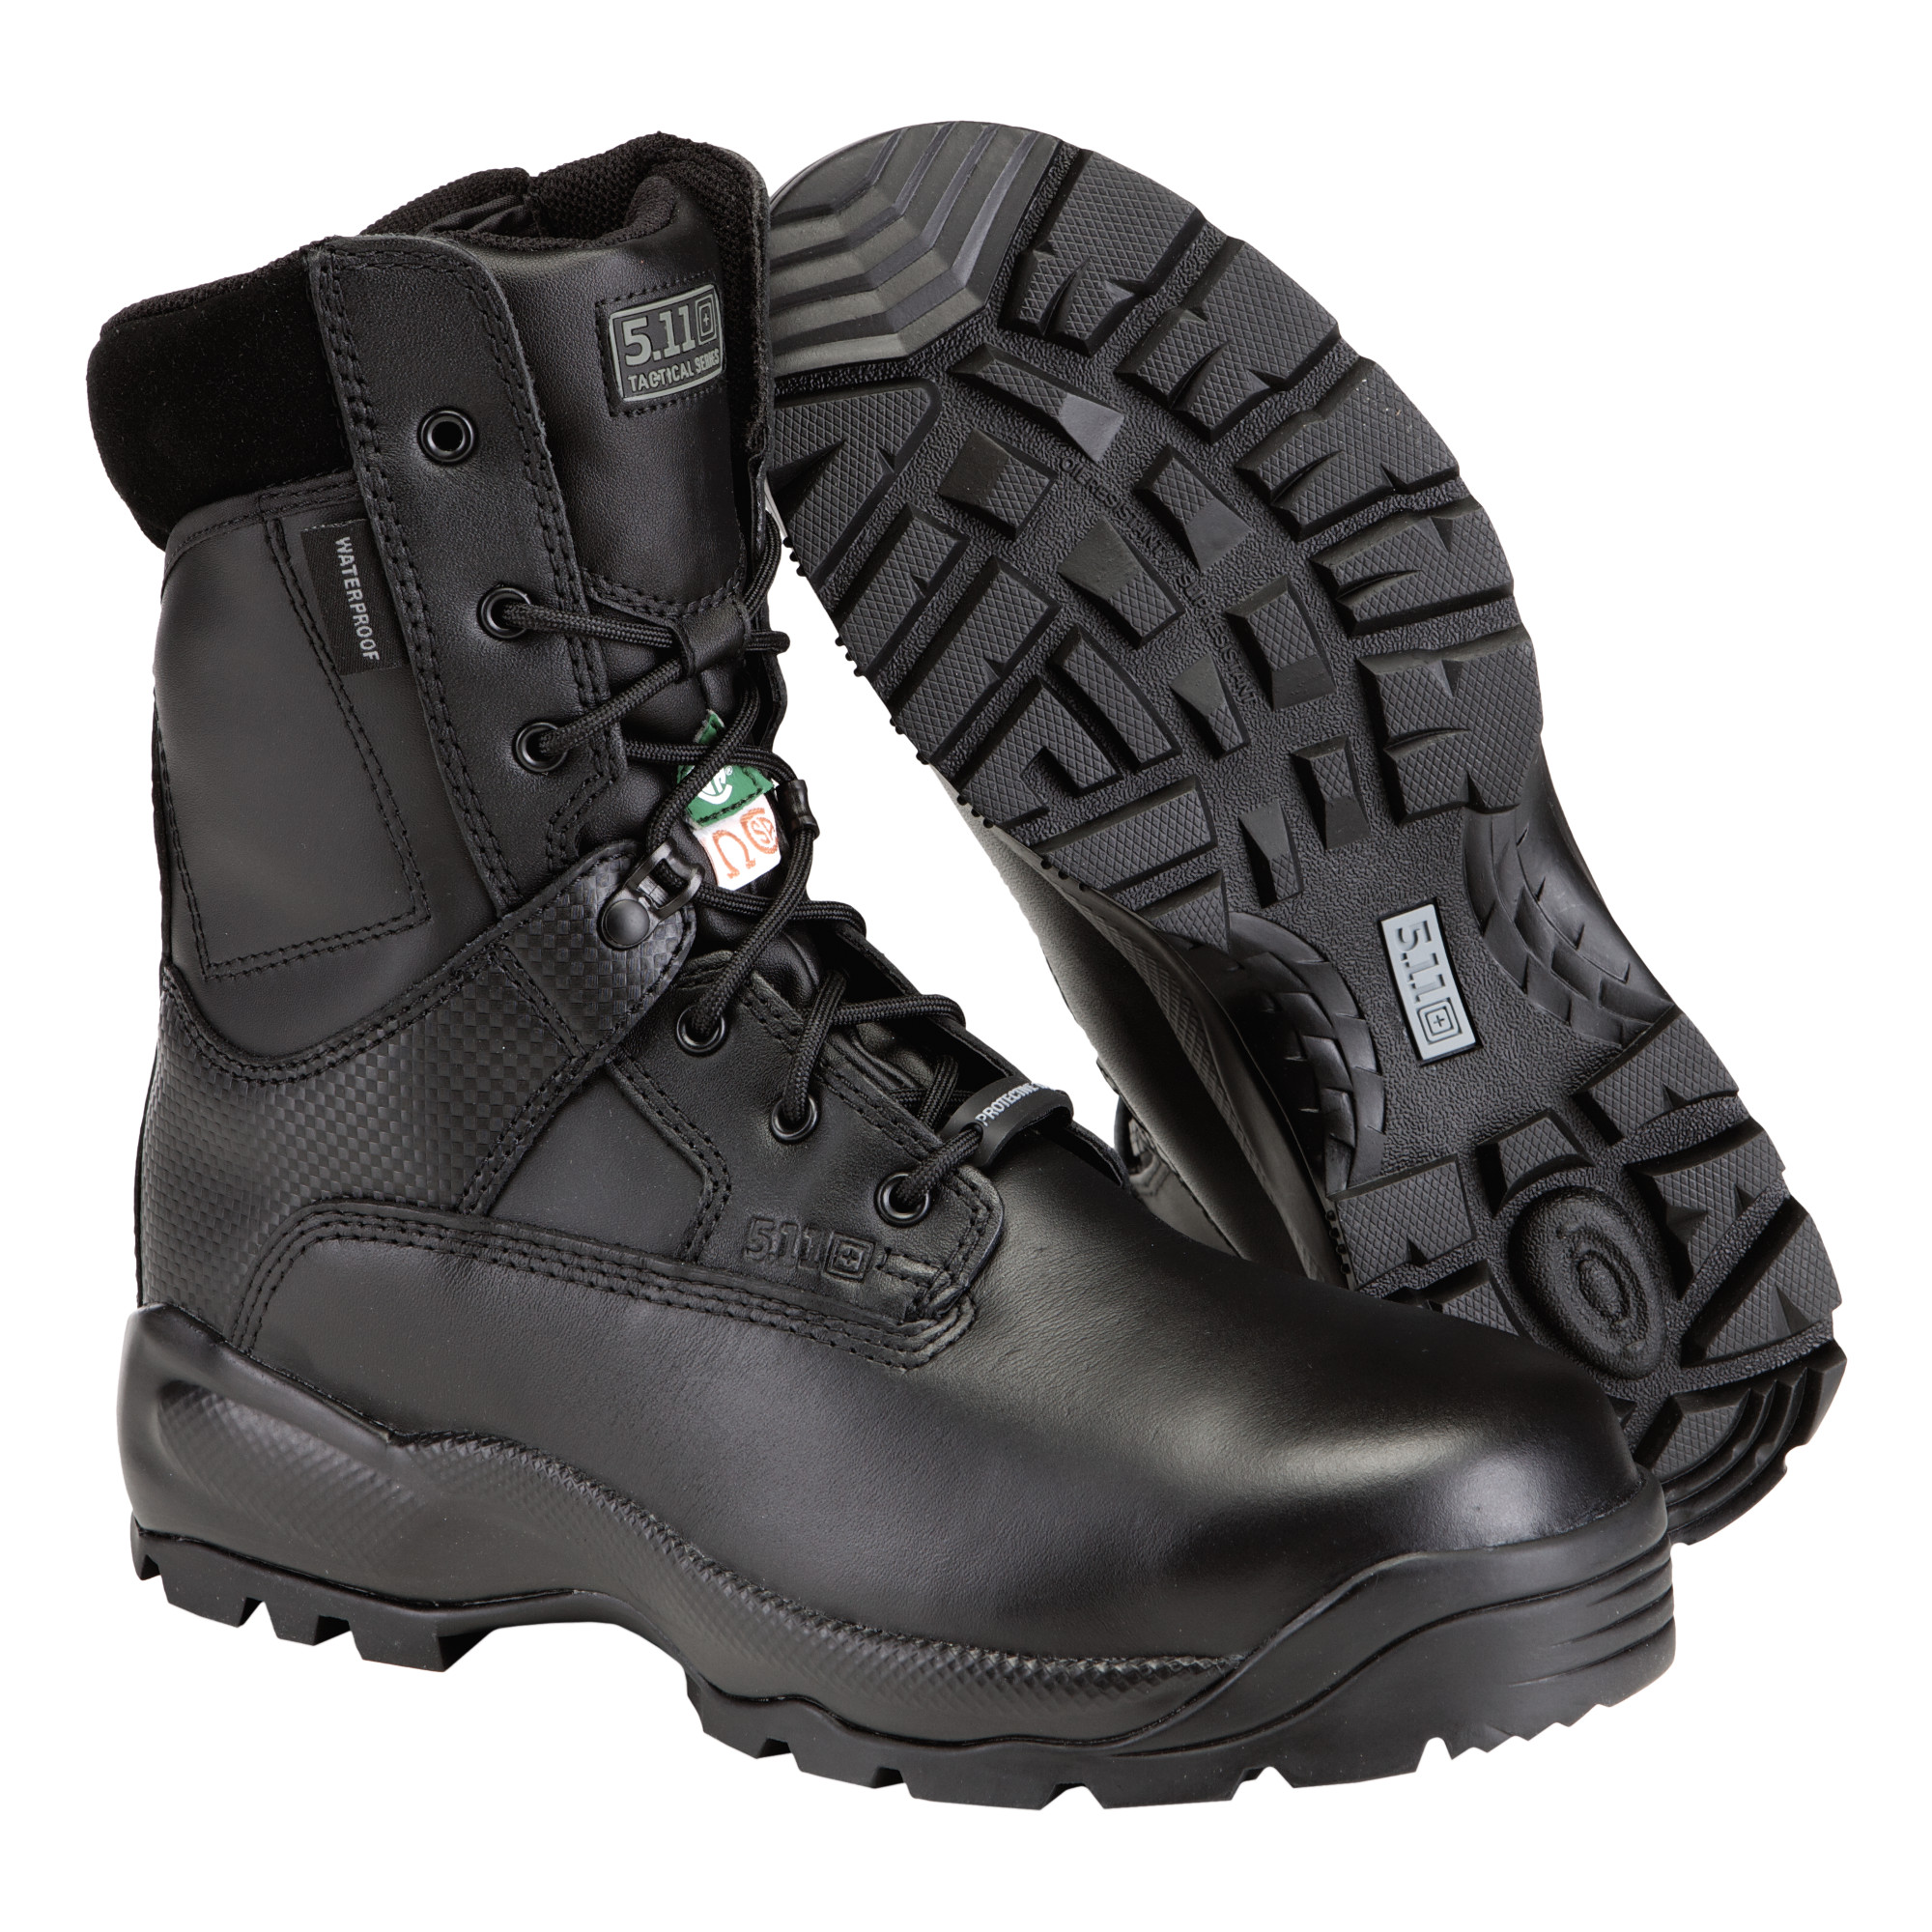 5.11 ATAC SHIELD 8in SafetyToe Boot 12026